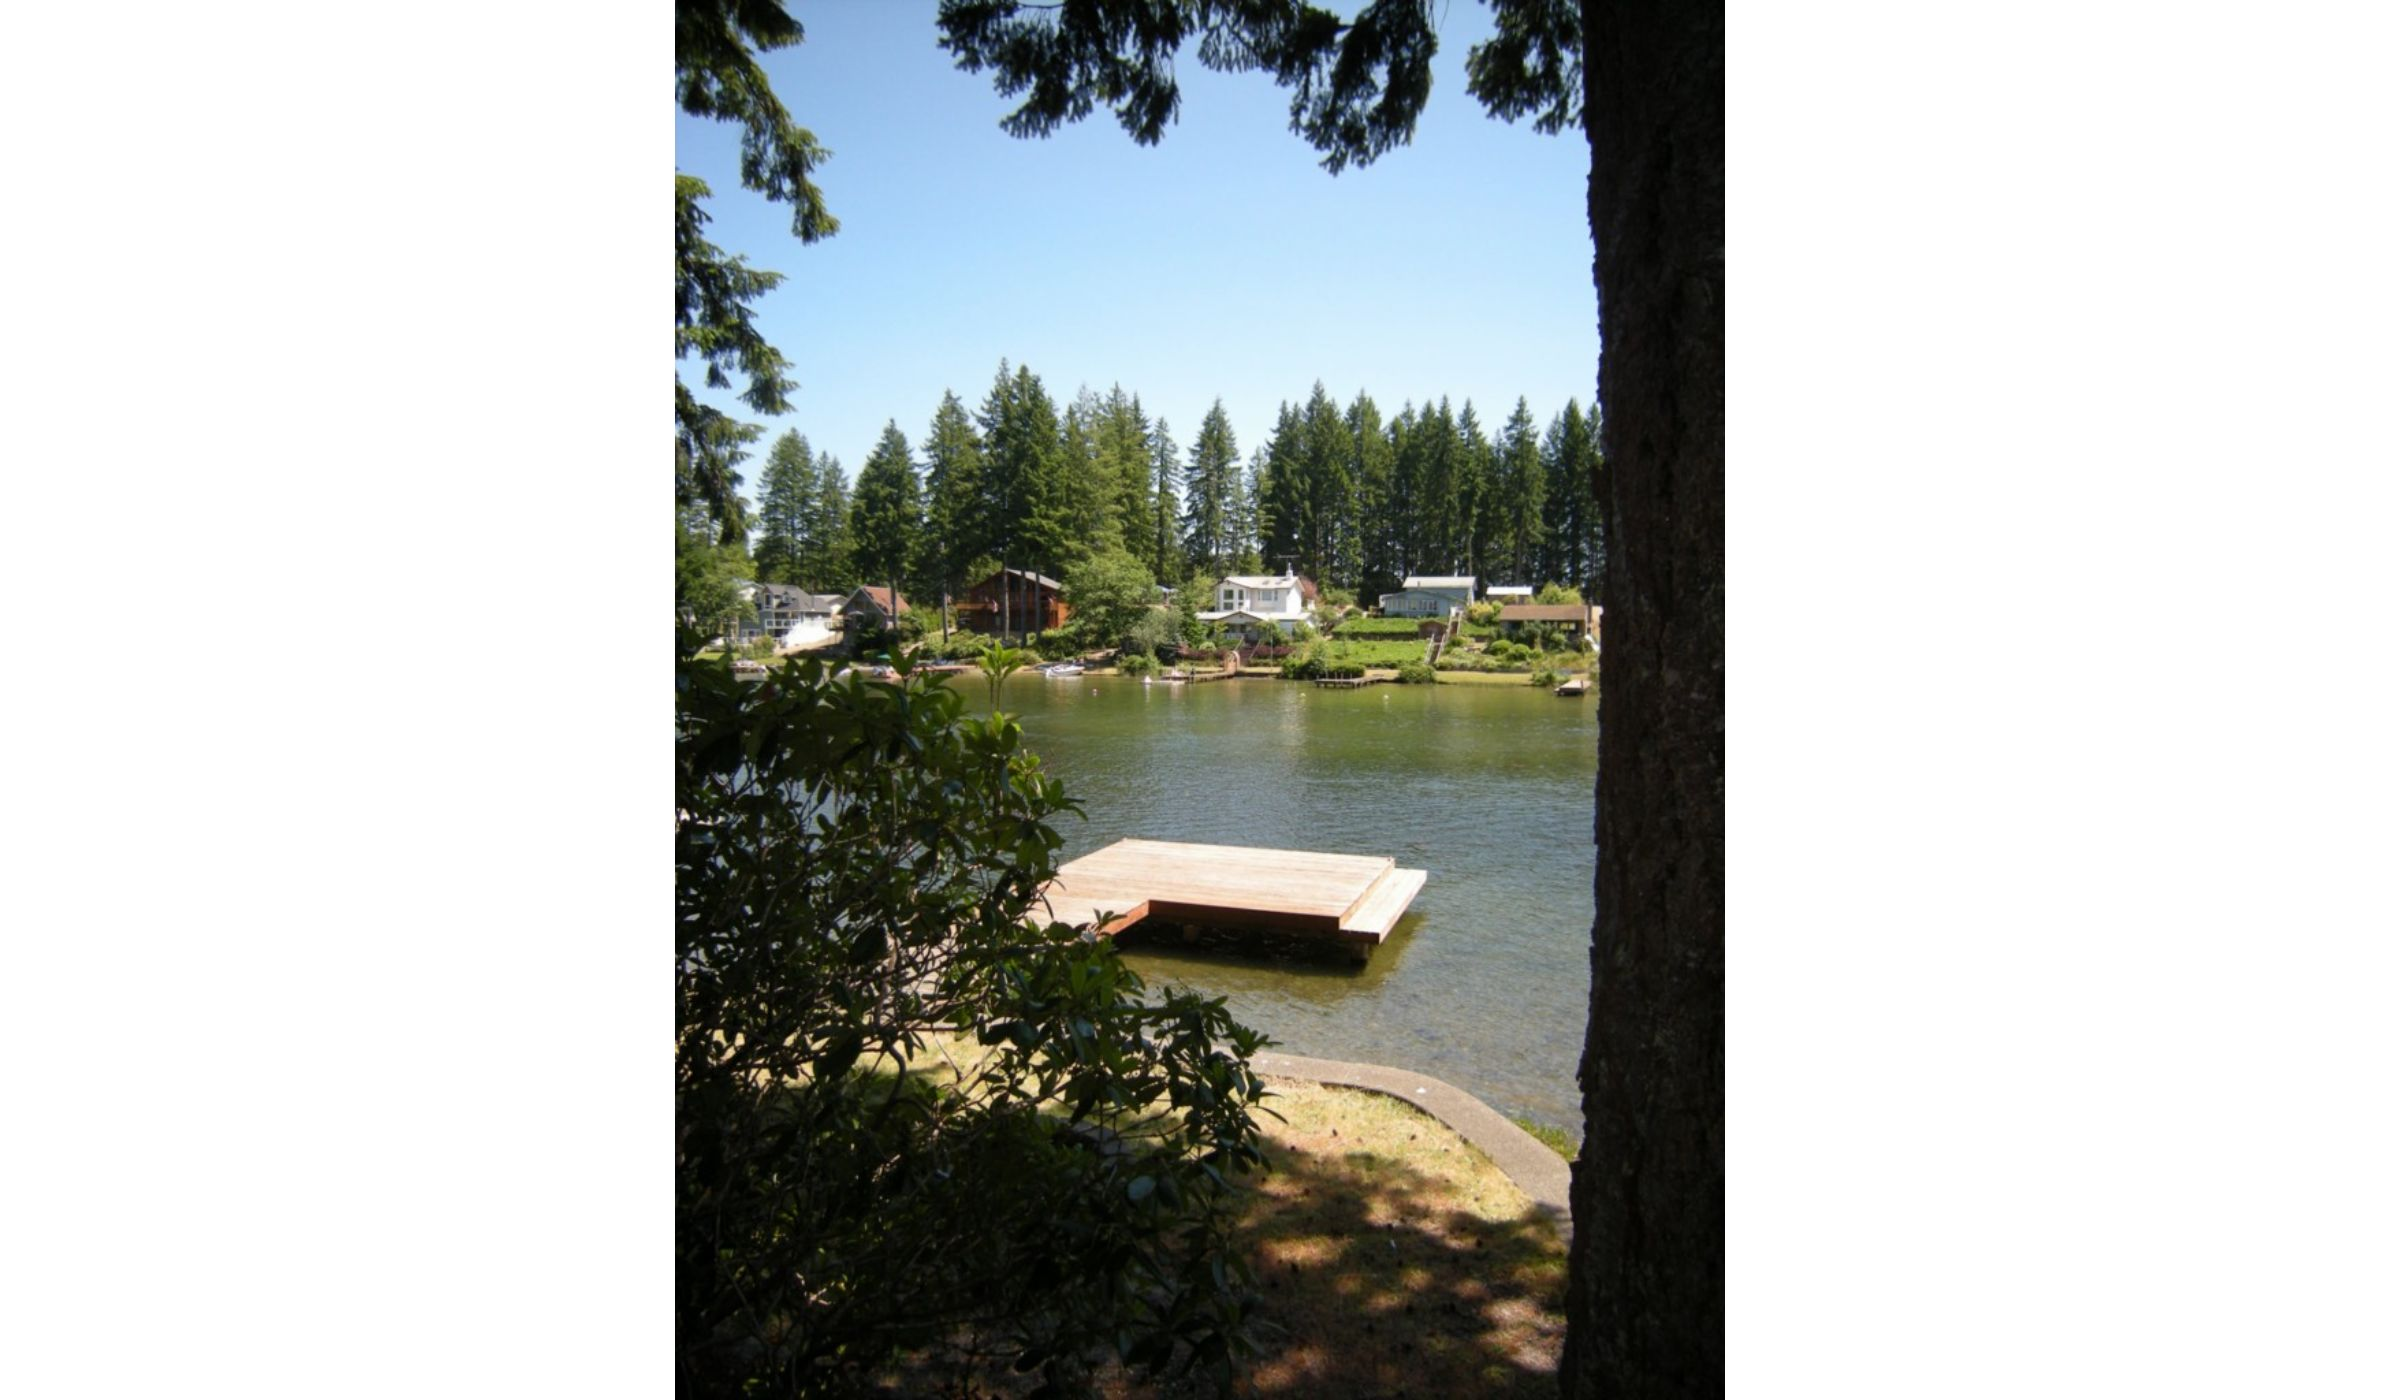 grapeview mature singles Professional singles club has walks, picnics, house parties,  mature landscaping, cherry tree,  grapeview 15 acres sea-sonal fish creek.